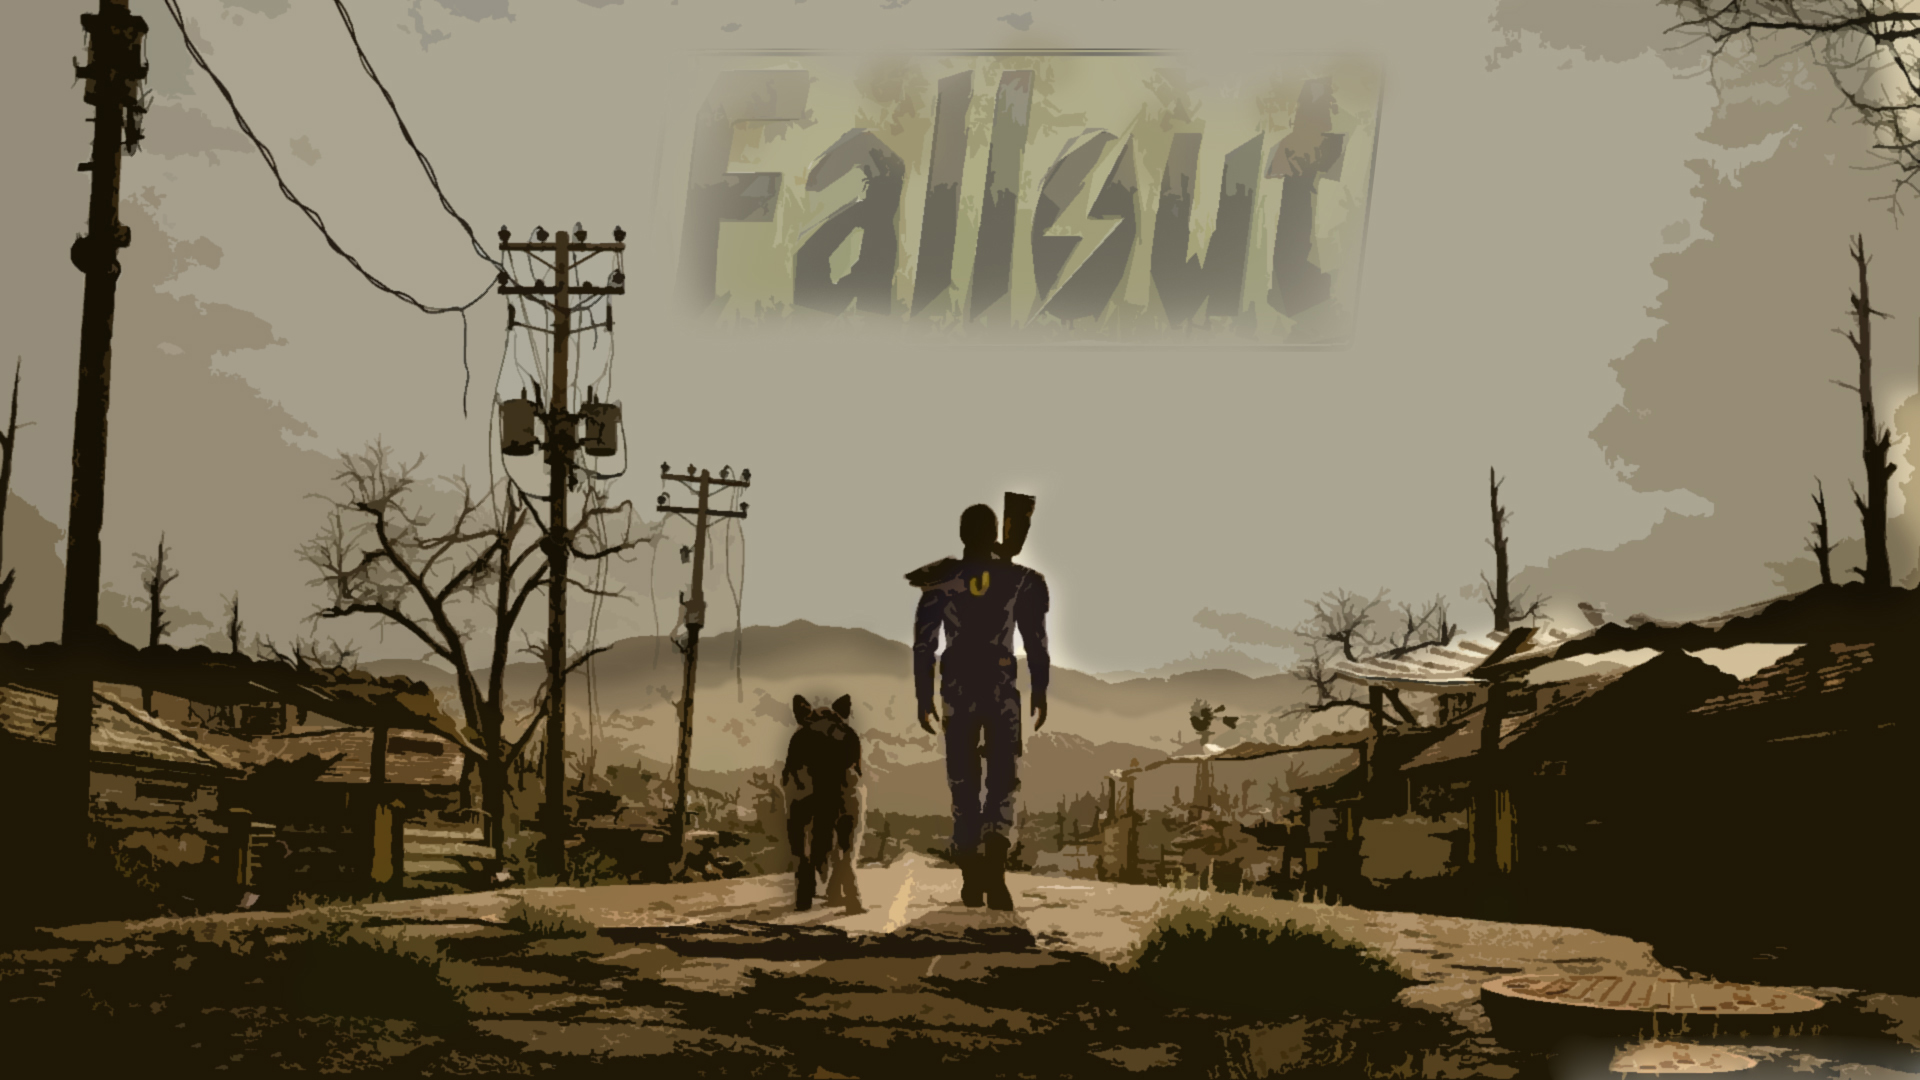 how to leave developer room fallout 4